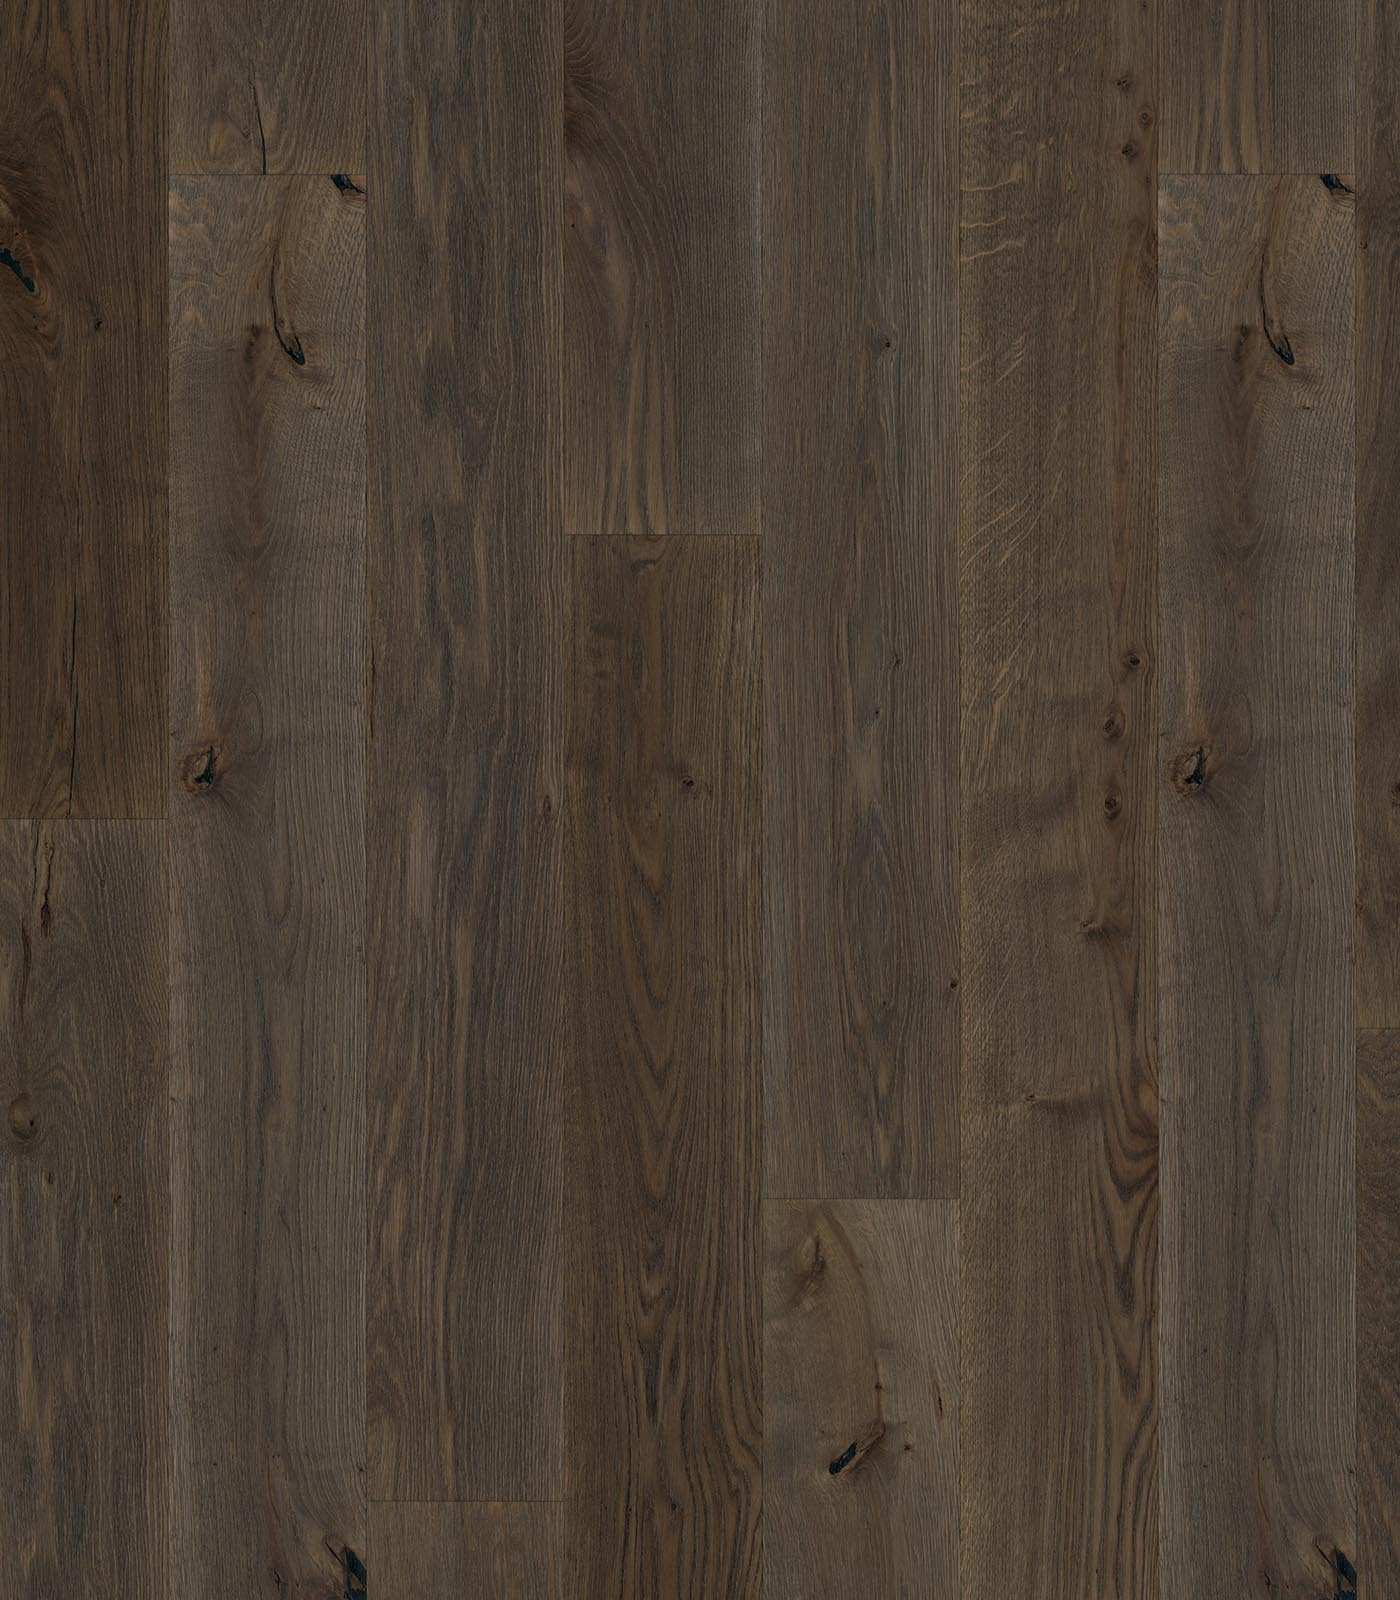 Stellenbosch-Lifestyle Collection-European Oak Floors-flat